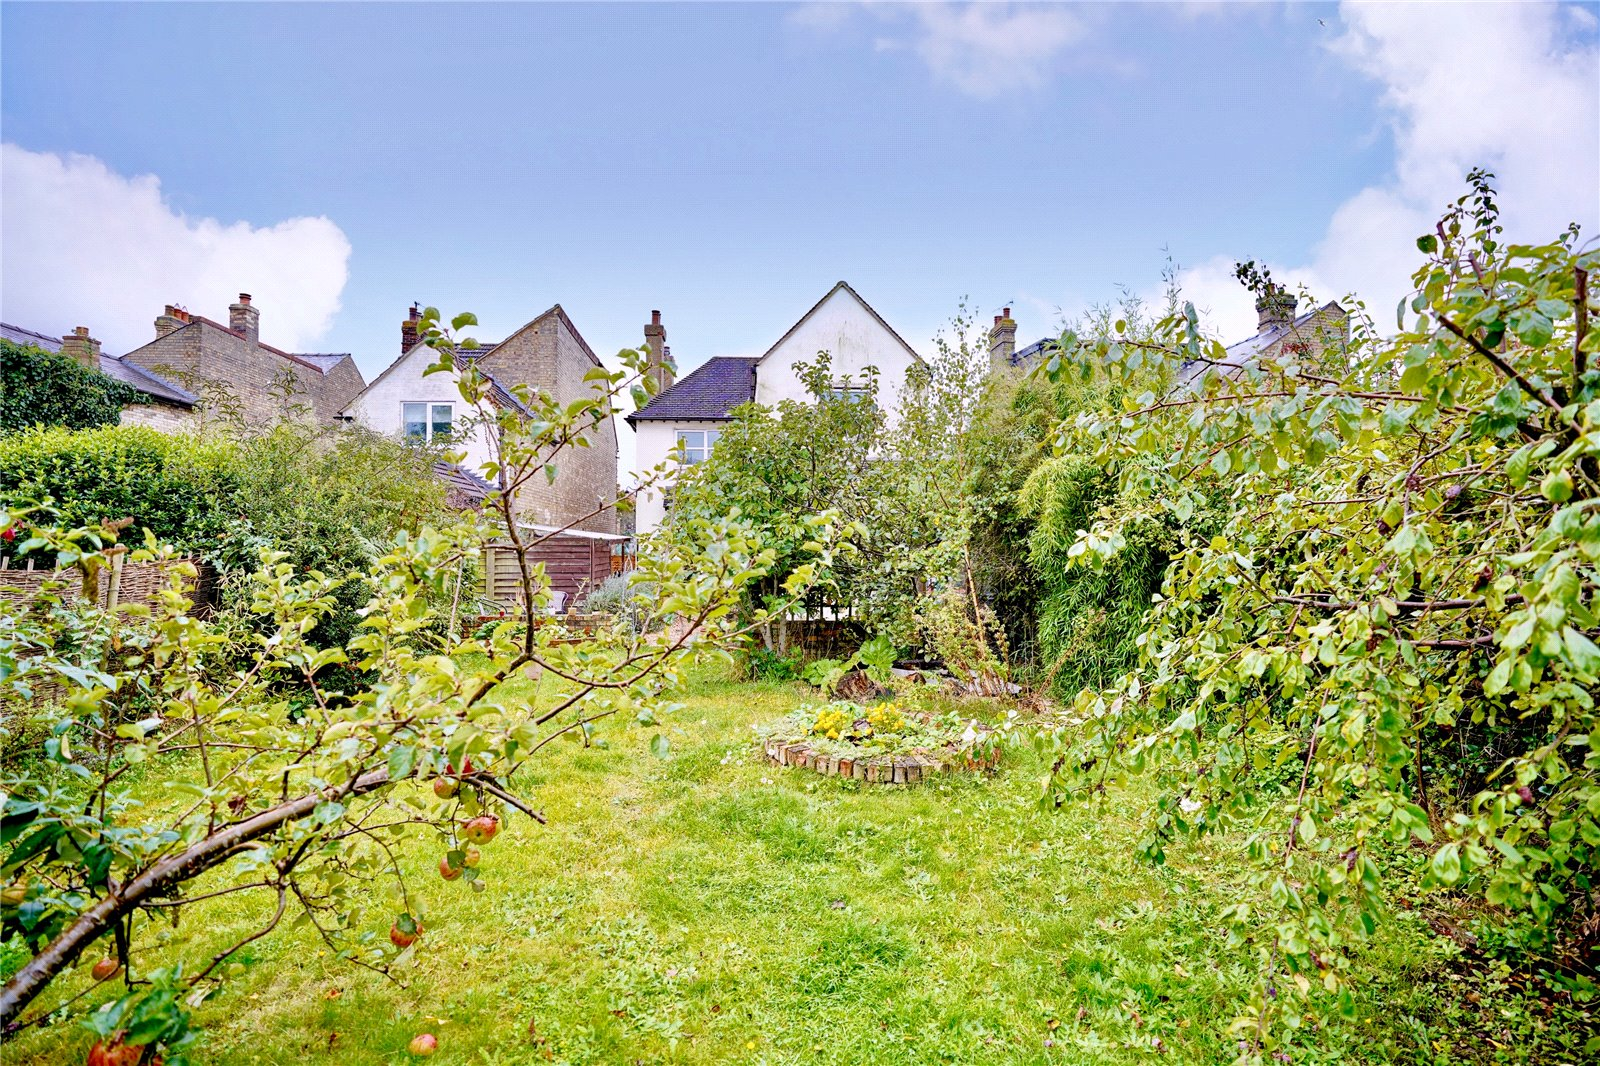 4 bed house for sale in St. Ives, PE27 5QP 0